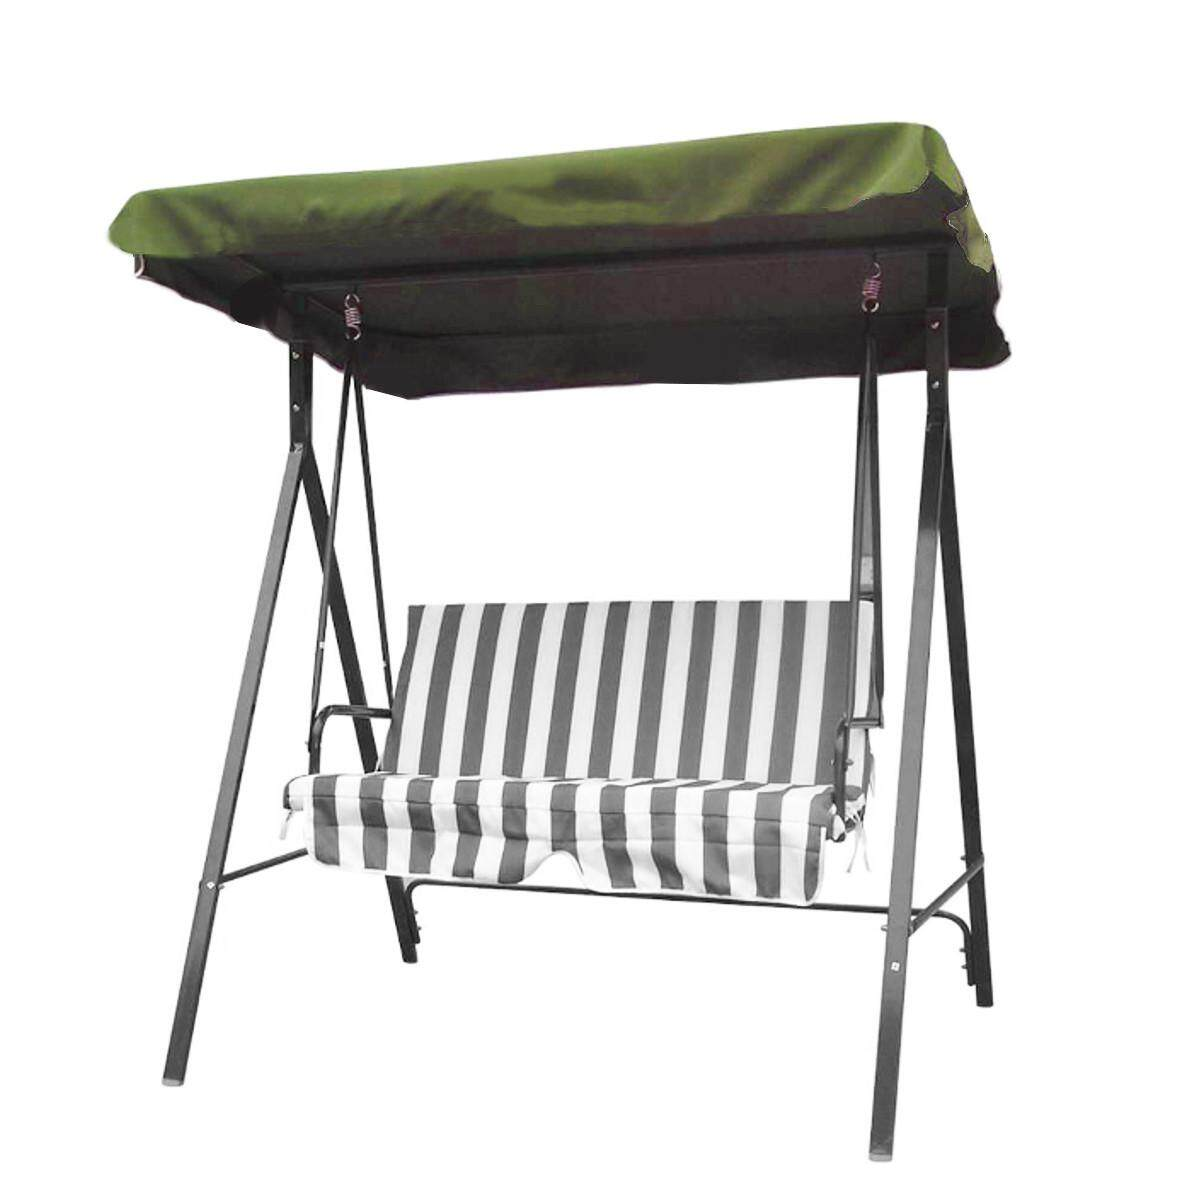 Hình ảnh Replacement Canopy for Swing Seat Garden Hammock 2 Seater Sizes Spare Cover